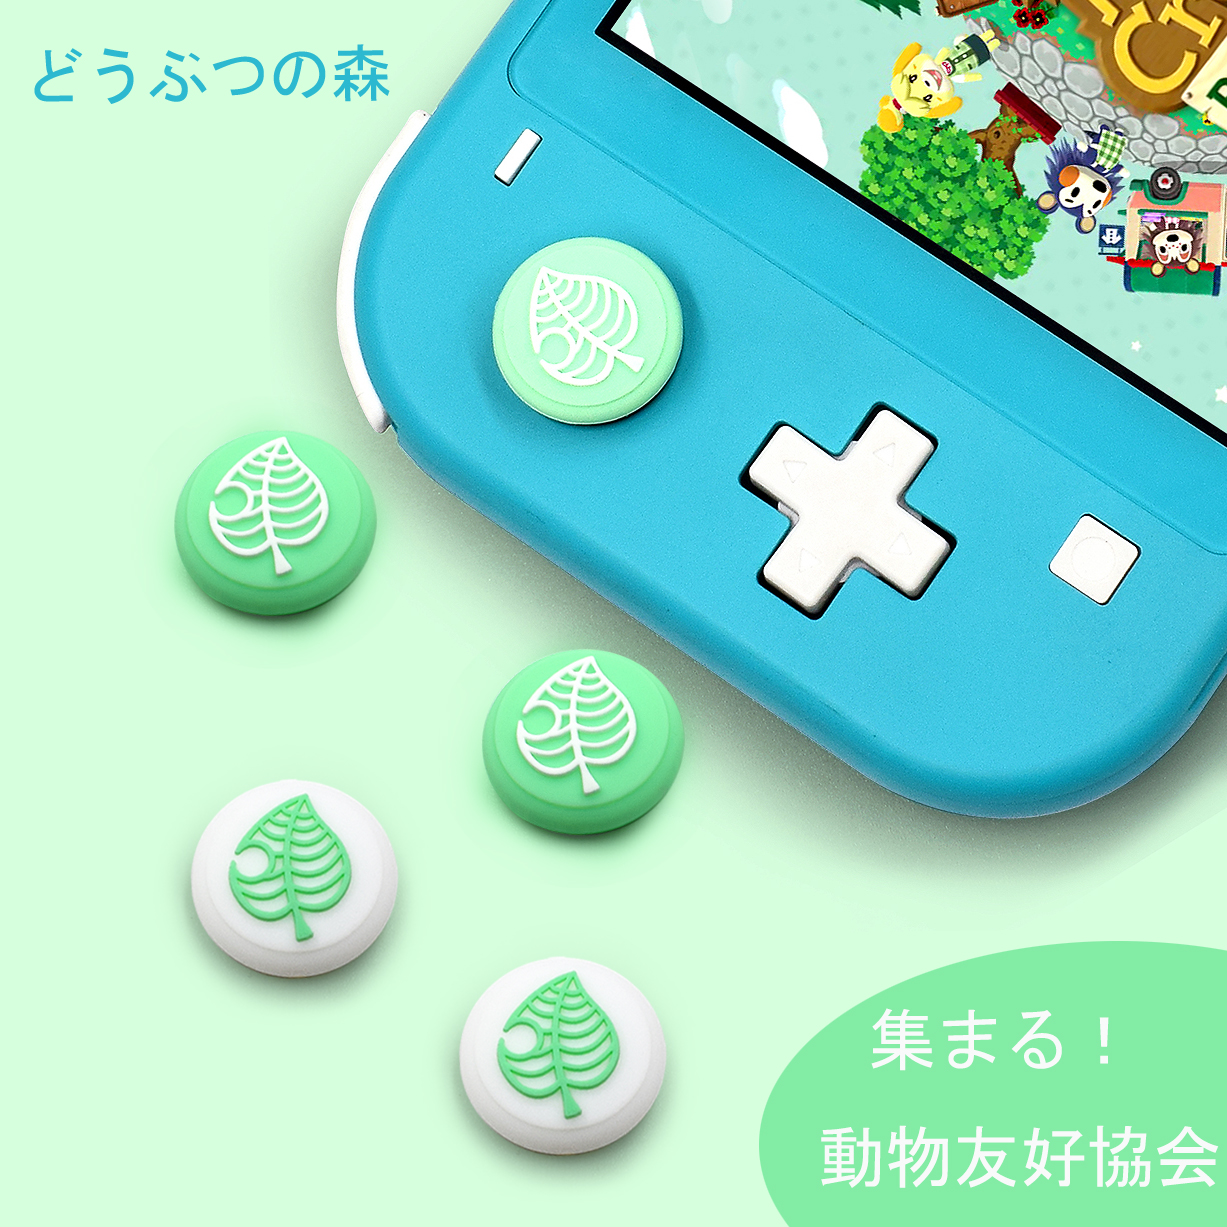 Animals Crosing 4 Pcs Gaming Rubber Thumb stick Grip Cover for Switch Lite Joycon Controllers Switch Analog Joy Con Joystick(China)